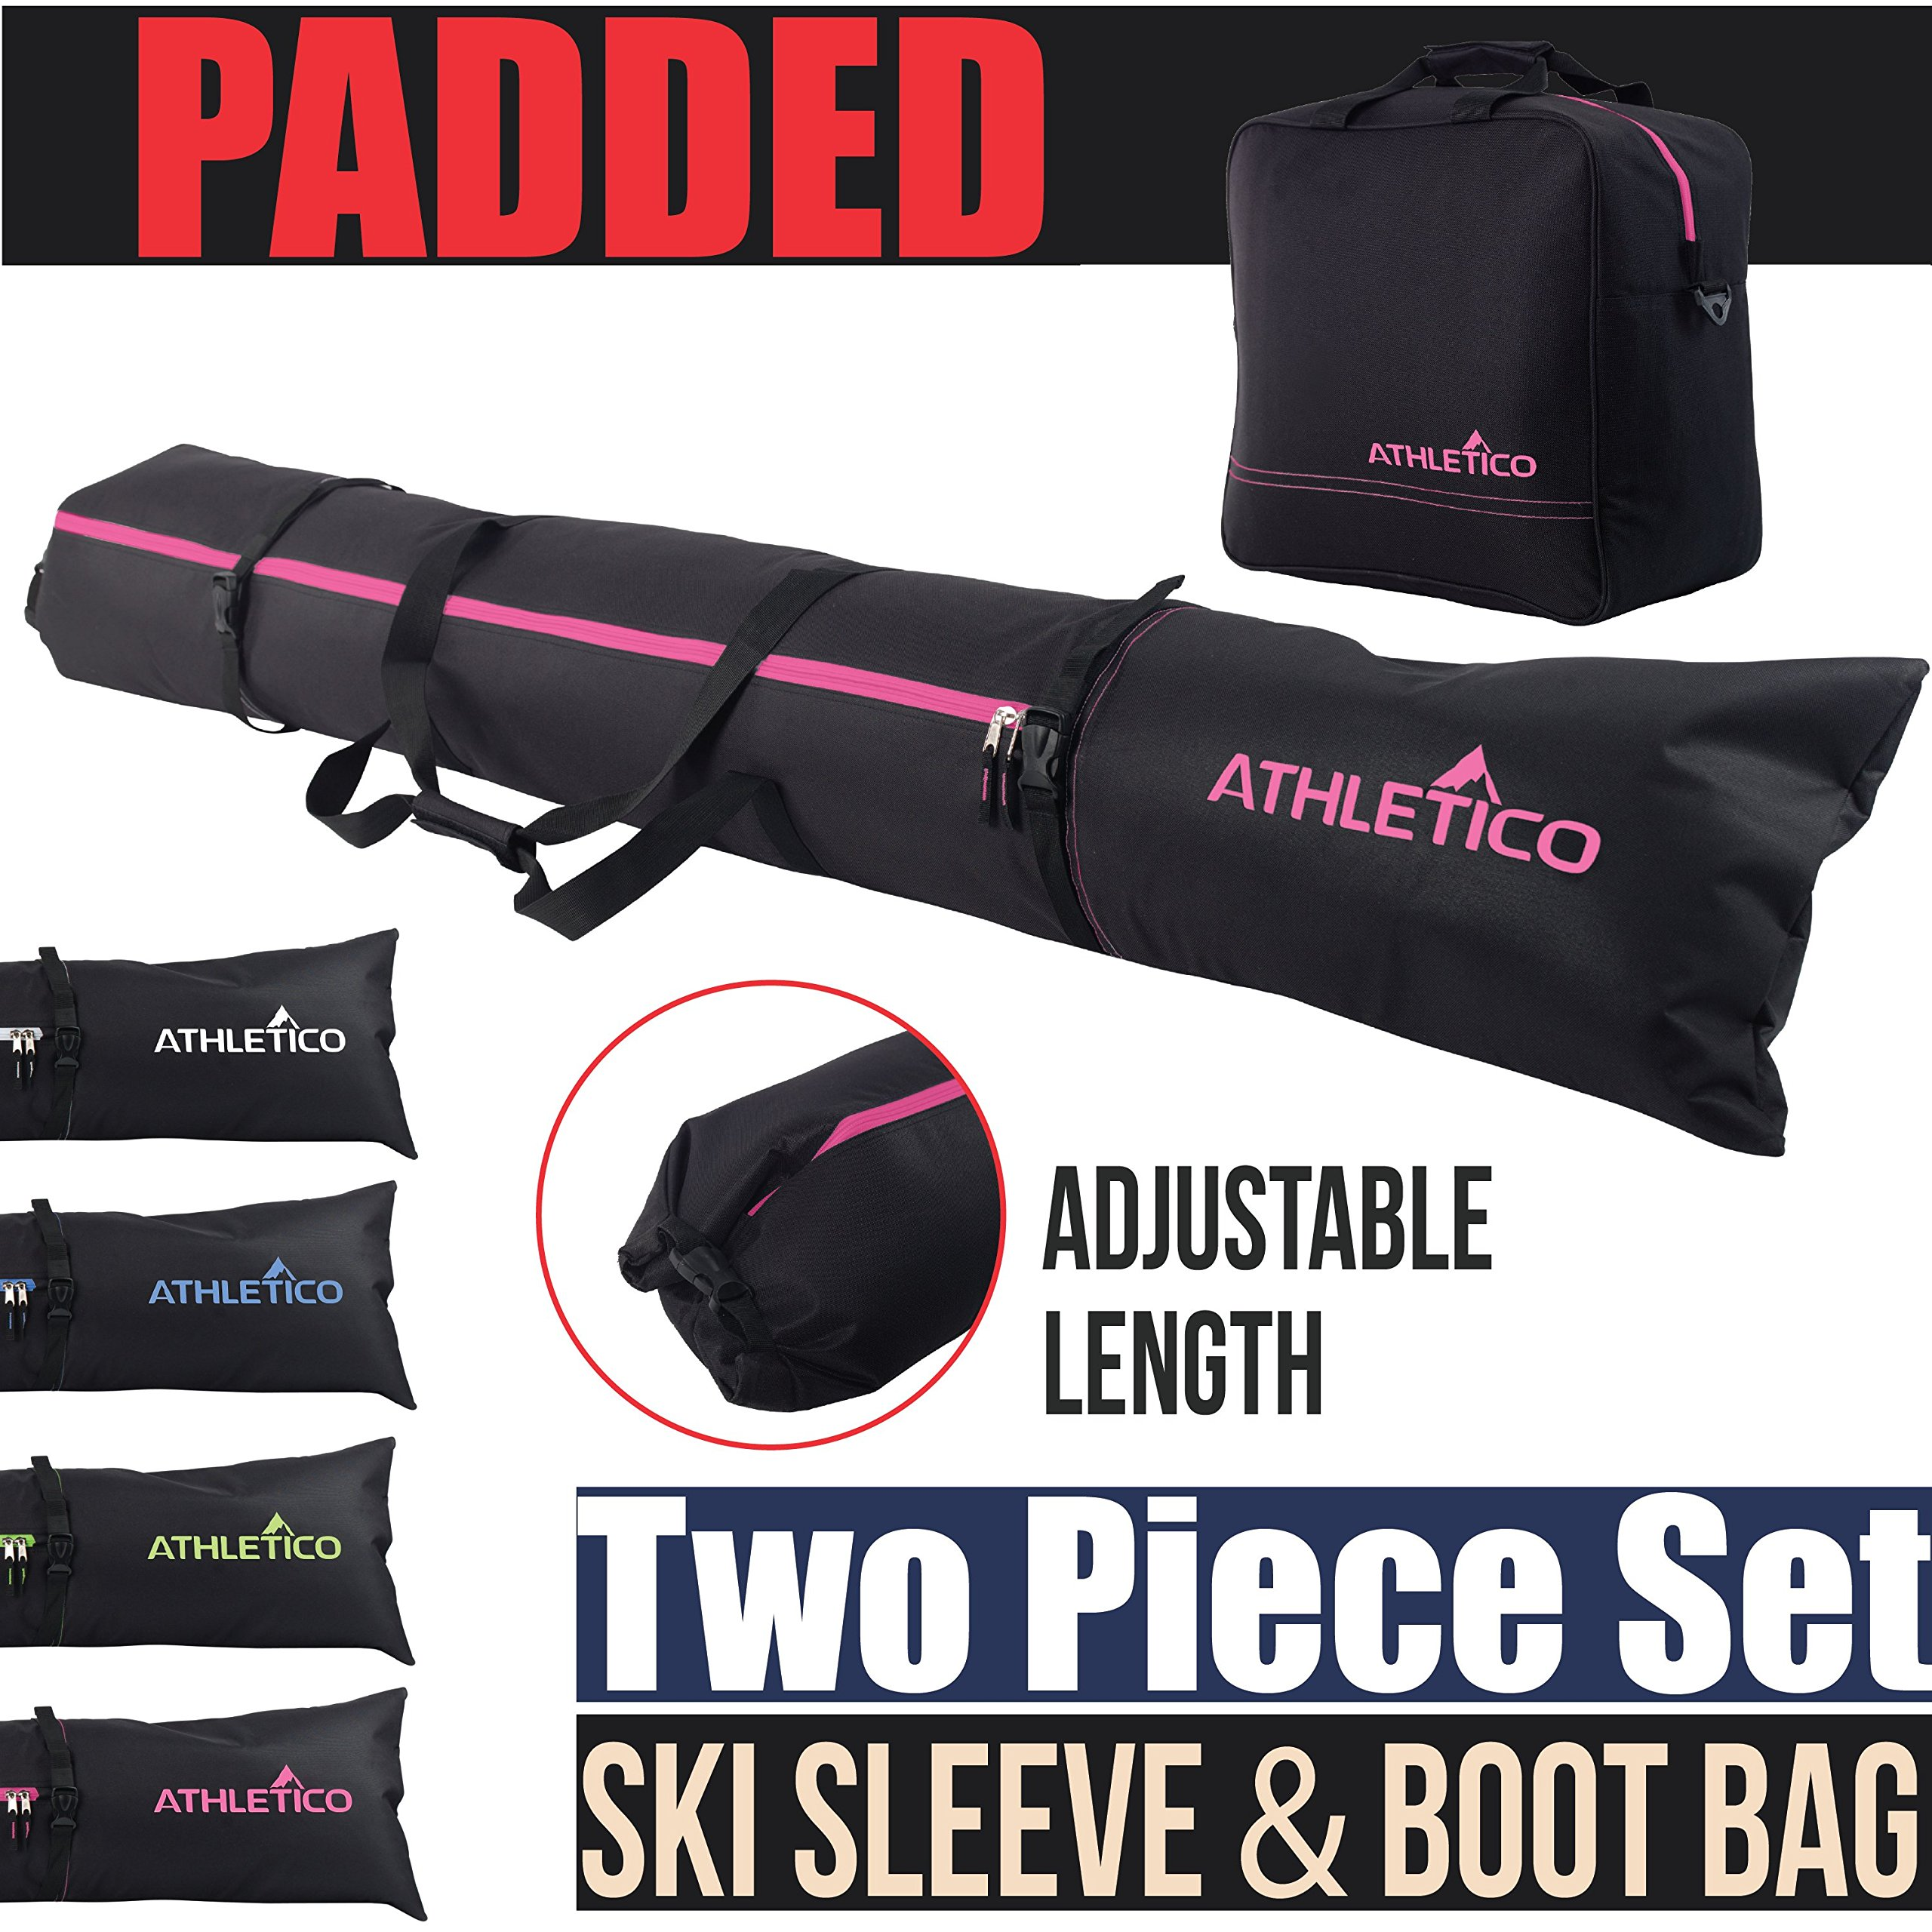 Athletico Padded Two-Piece Ski and Boot Bag Combo | Store & Transport Skis Up to 200 cm and Boots Up to Size 13 | Includes 1 Padded Ski Bag & 1 Padded Ski Boot Bag (Black with Pink Trim (Padded)) by Athletico